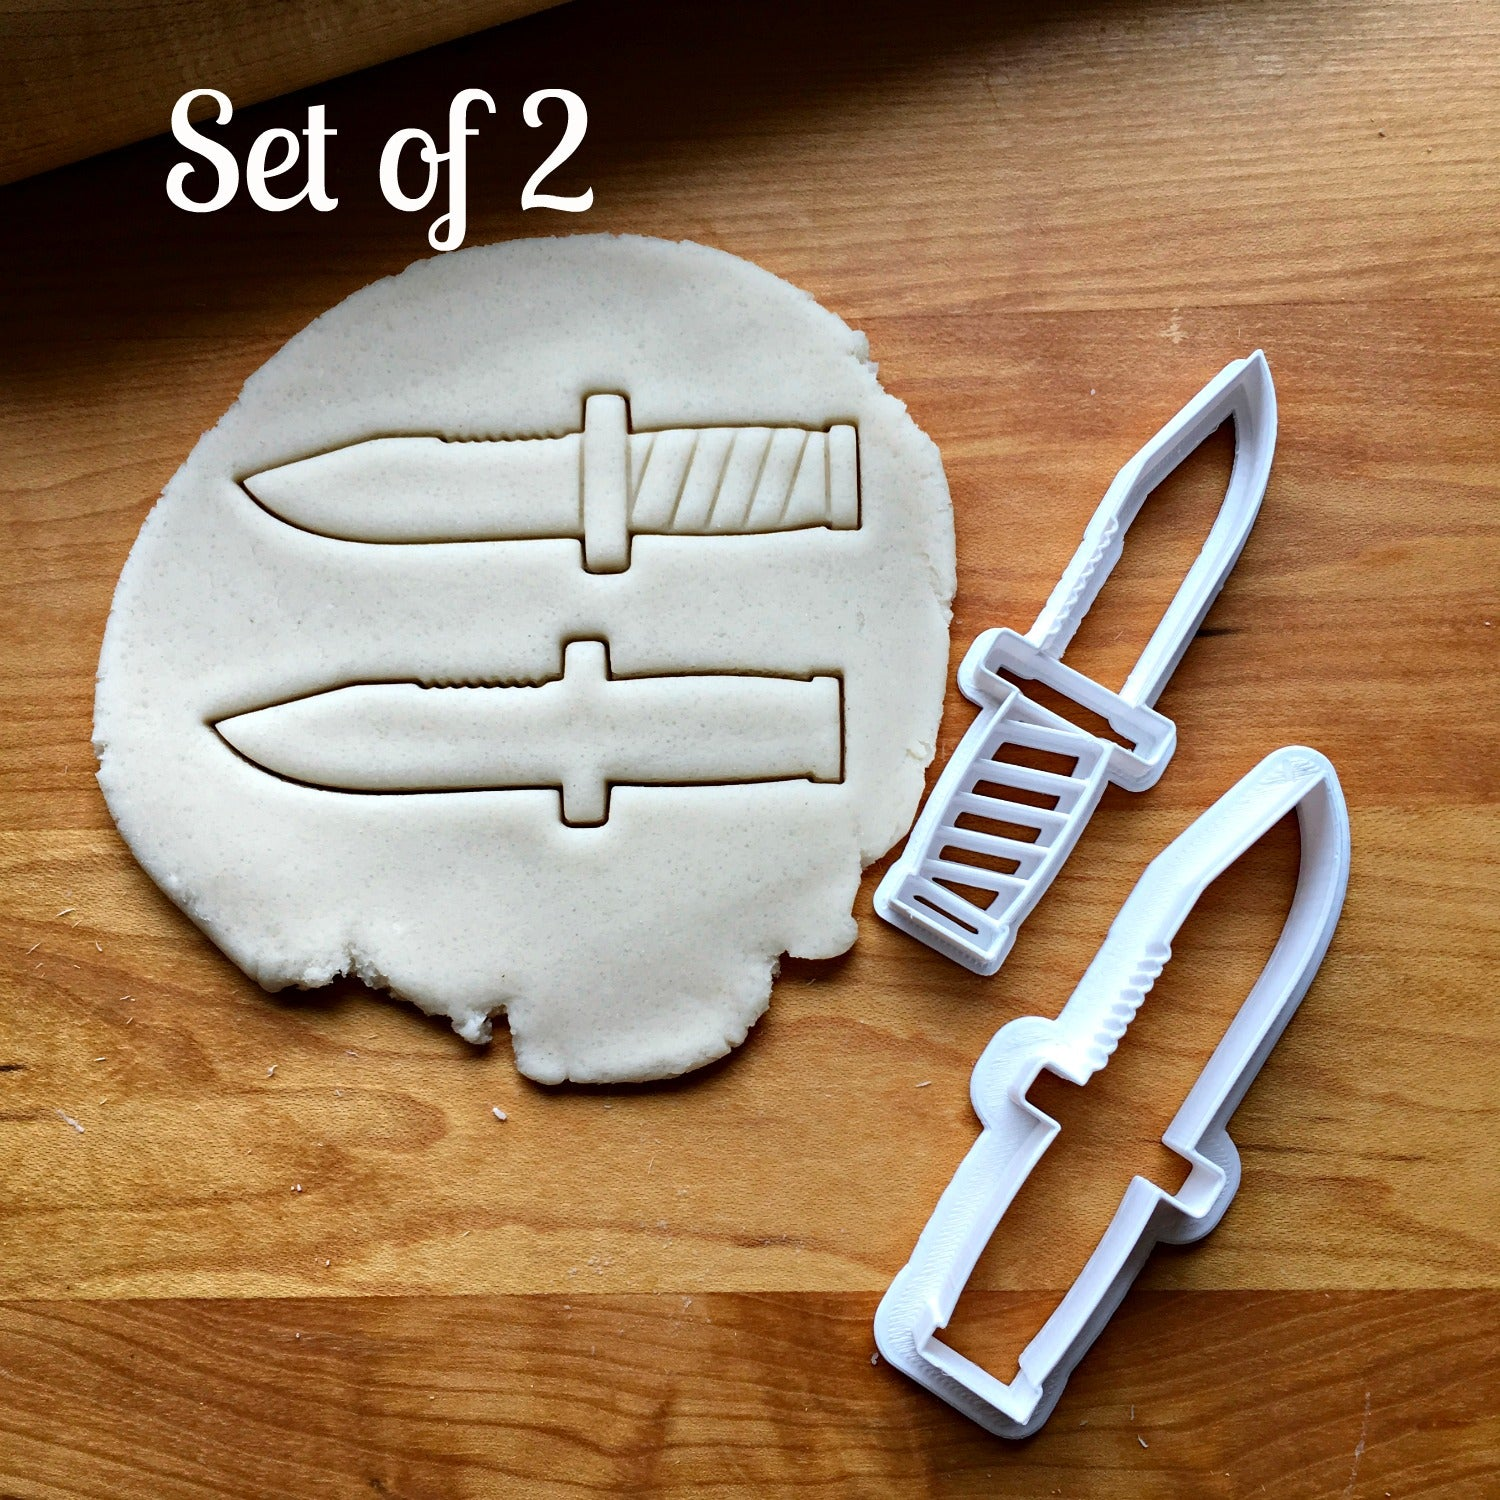 Set of 2 Military Knife Cookie Cutters/Multi-Size/Dishwasher Safe